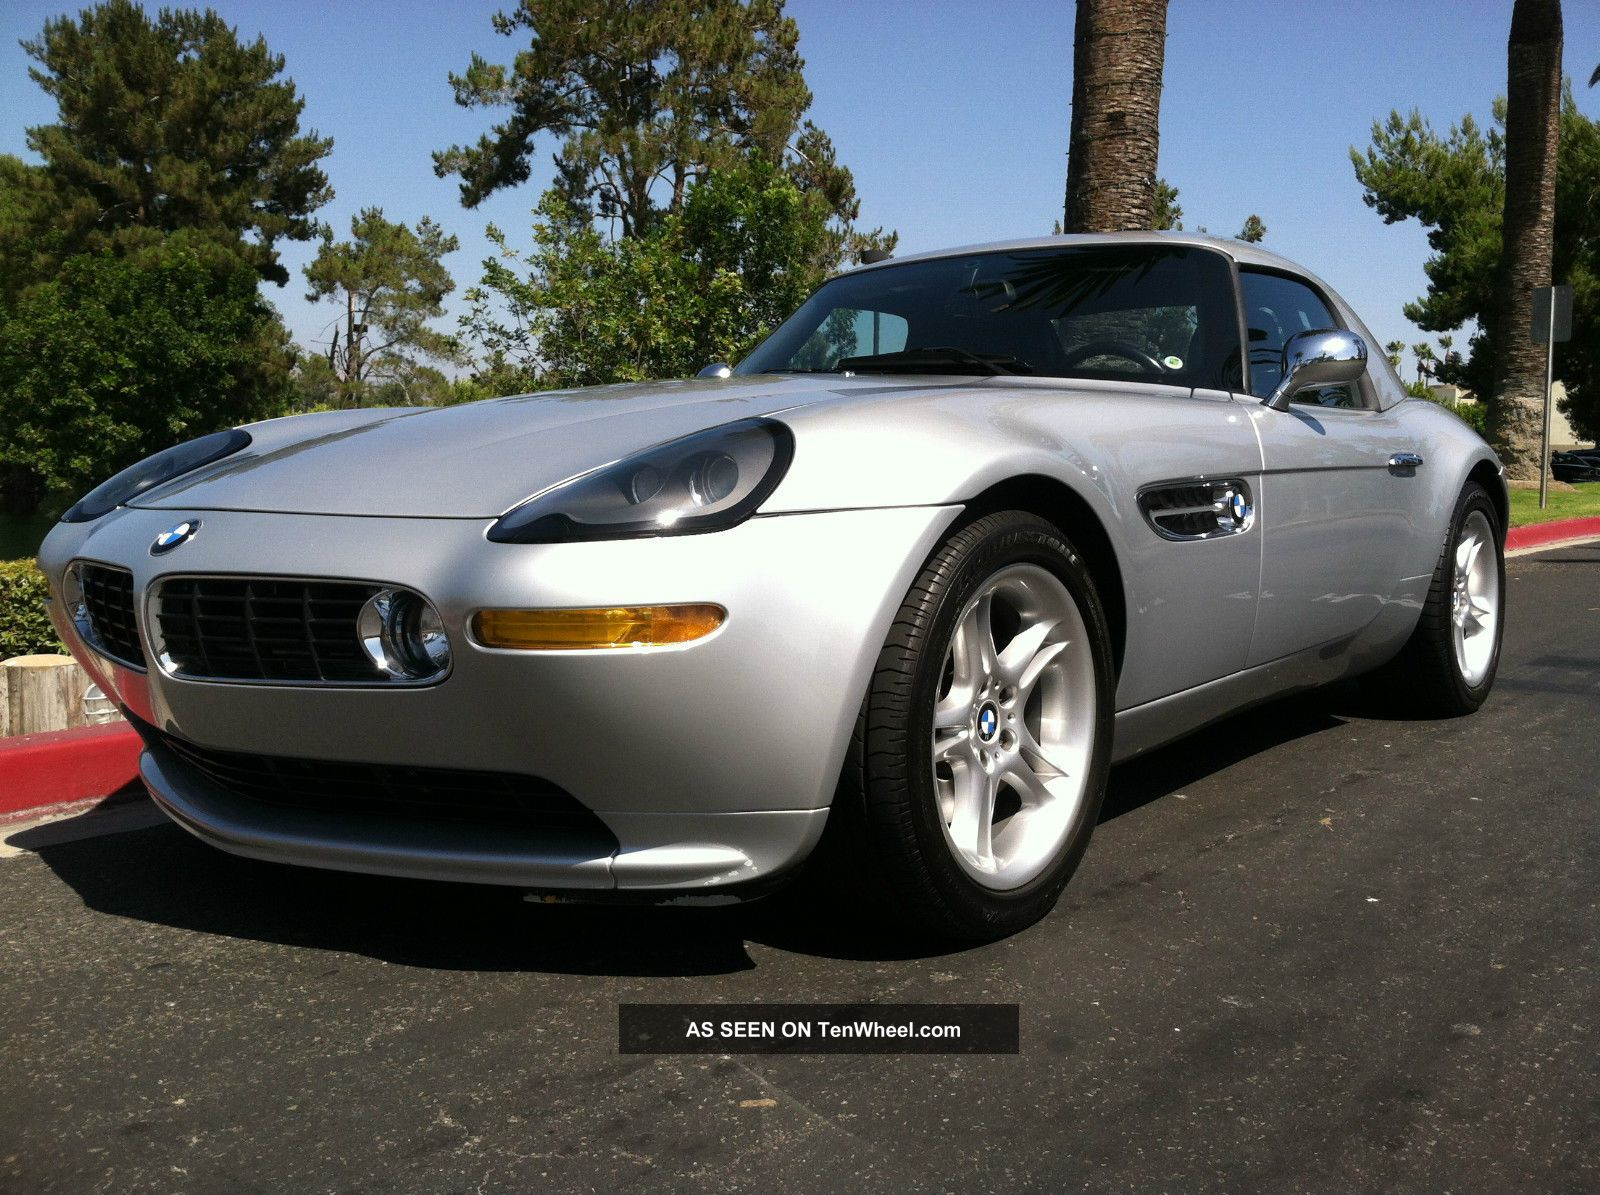 2000 Bmw Z8 Silver / Black 6 Speed Hard Top,  2 Owners Rare Car Z8 photo